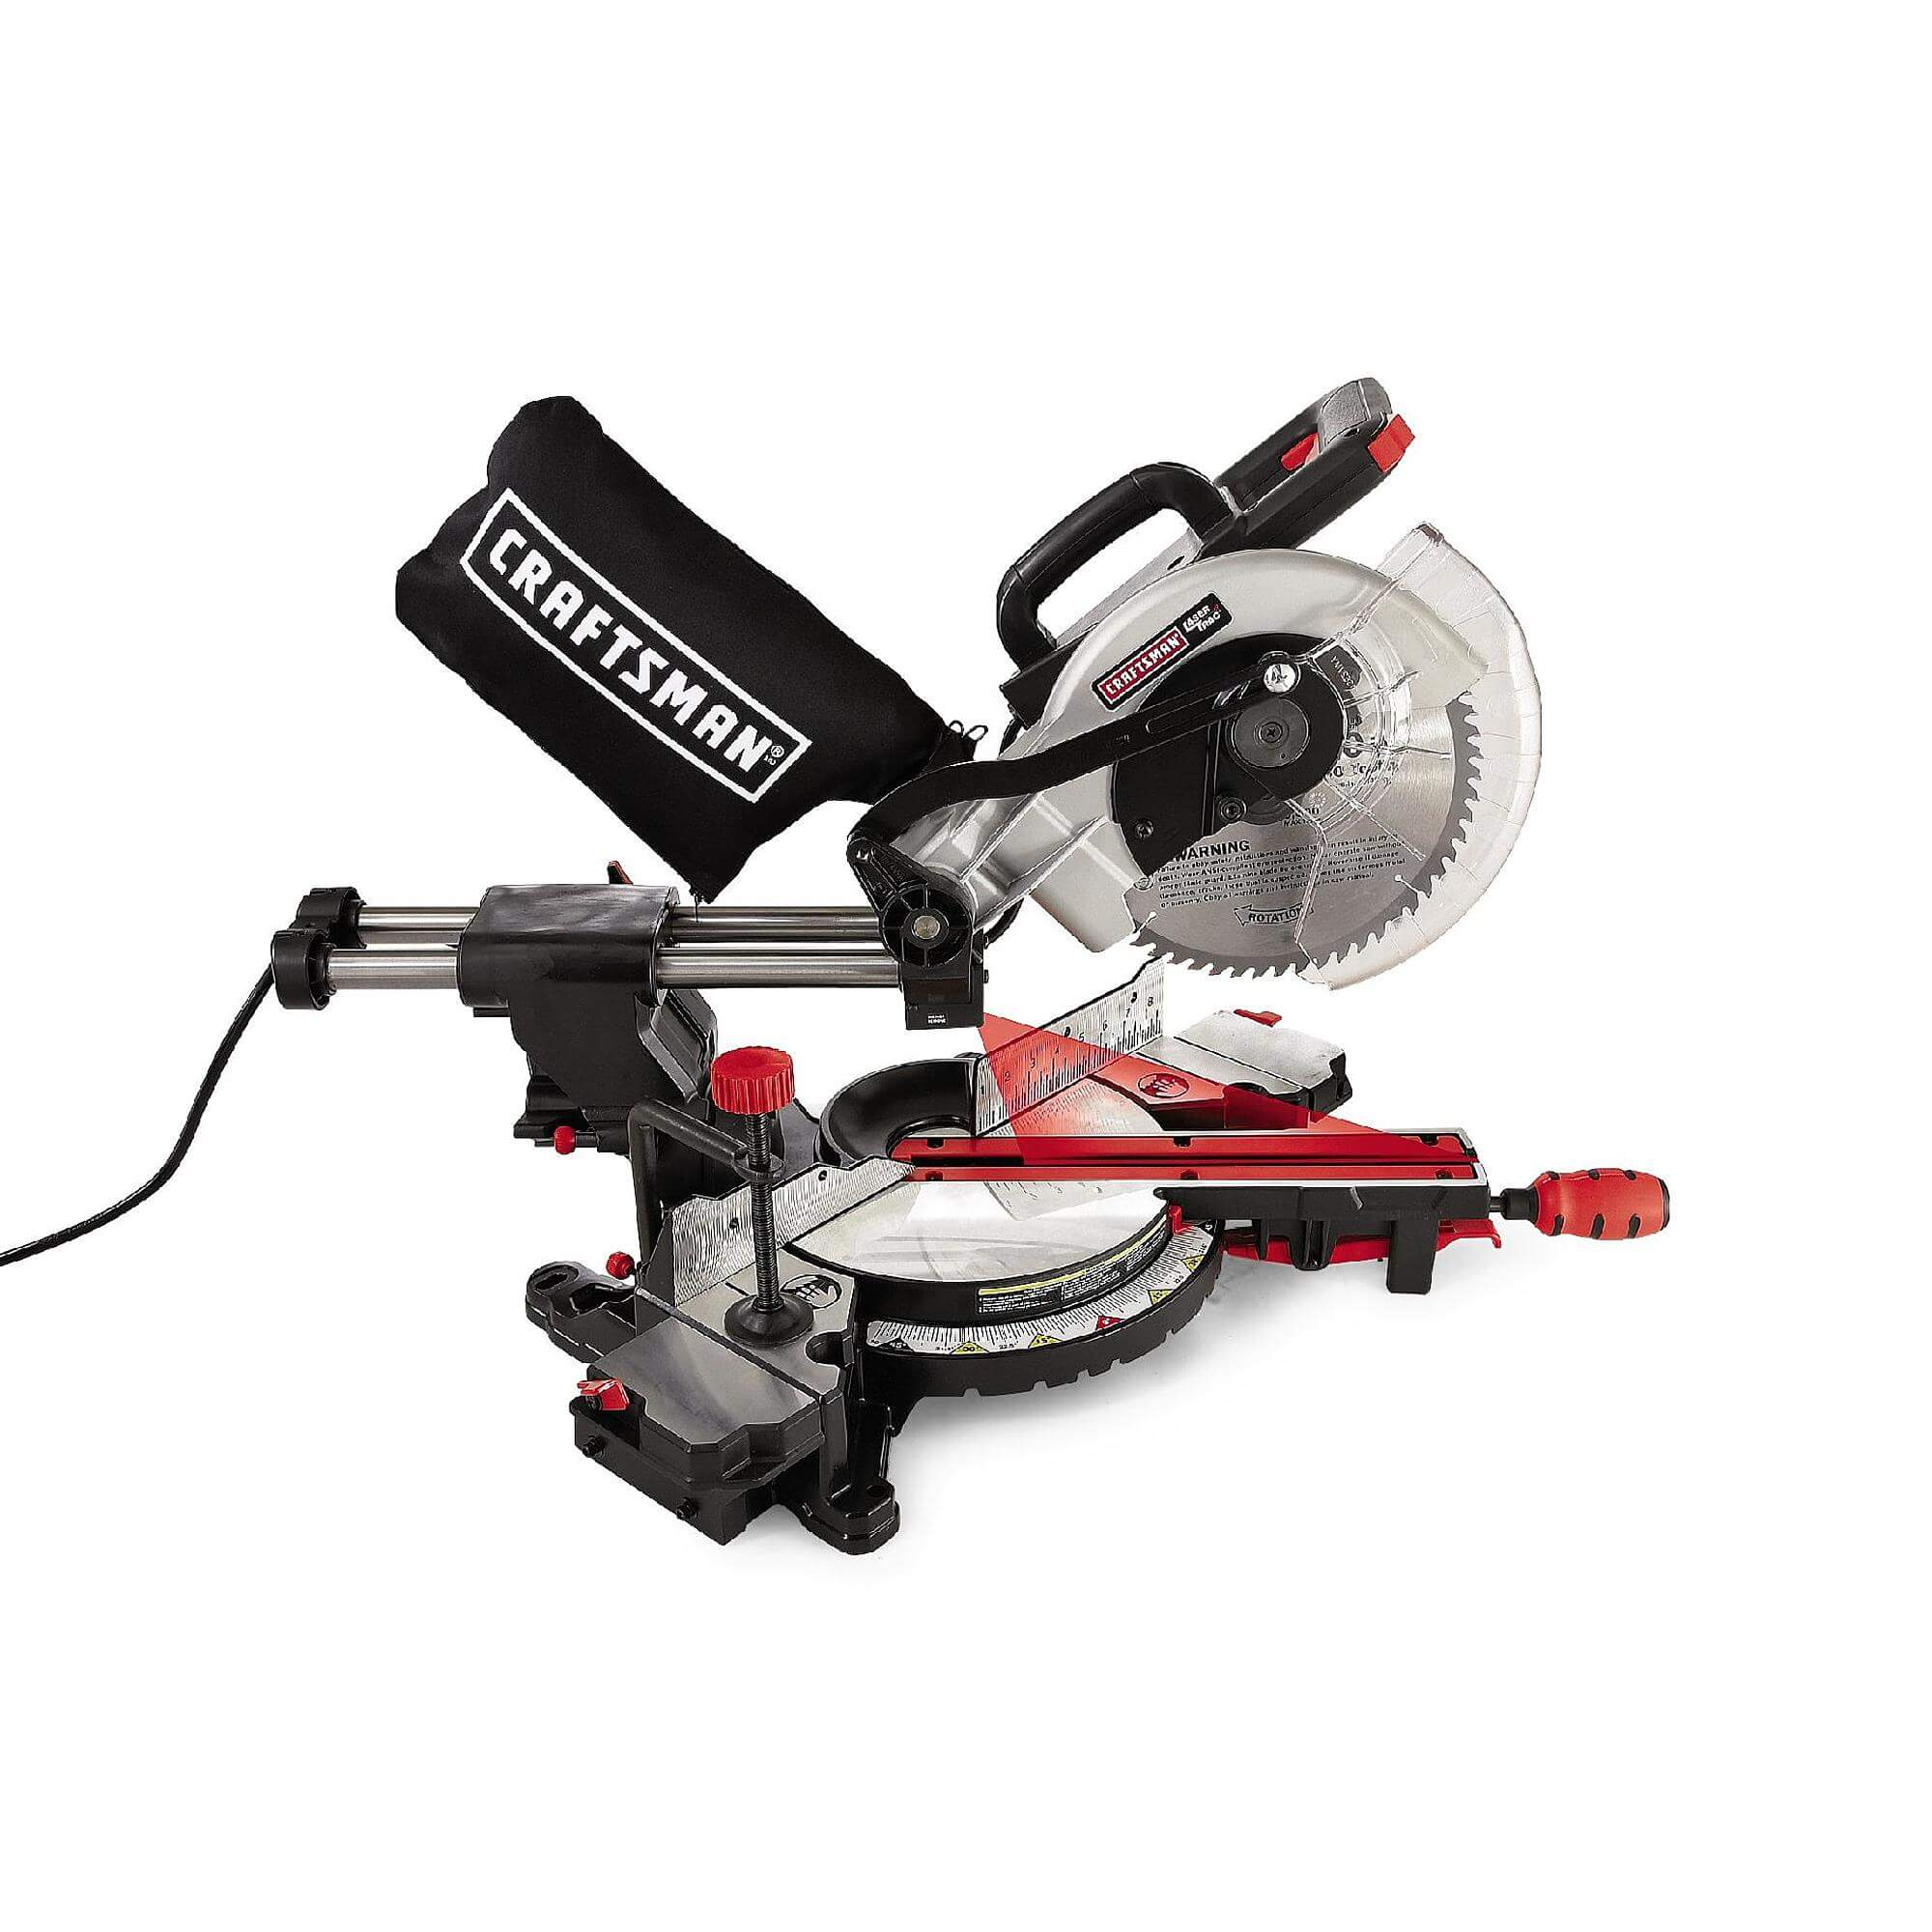 Craftsman 10in Single Bevel Sliding Compound Miter Saw